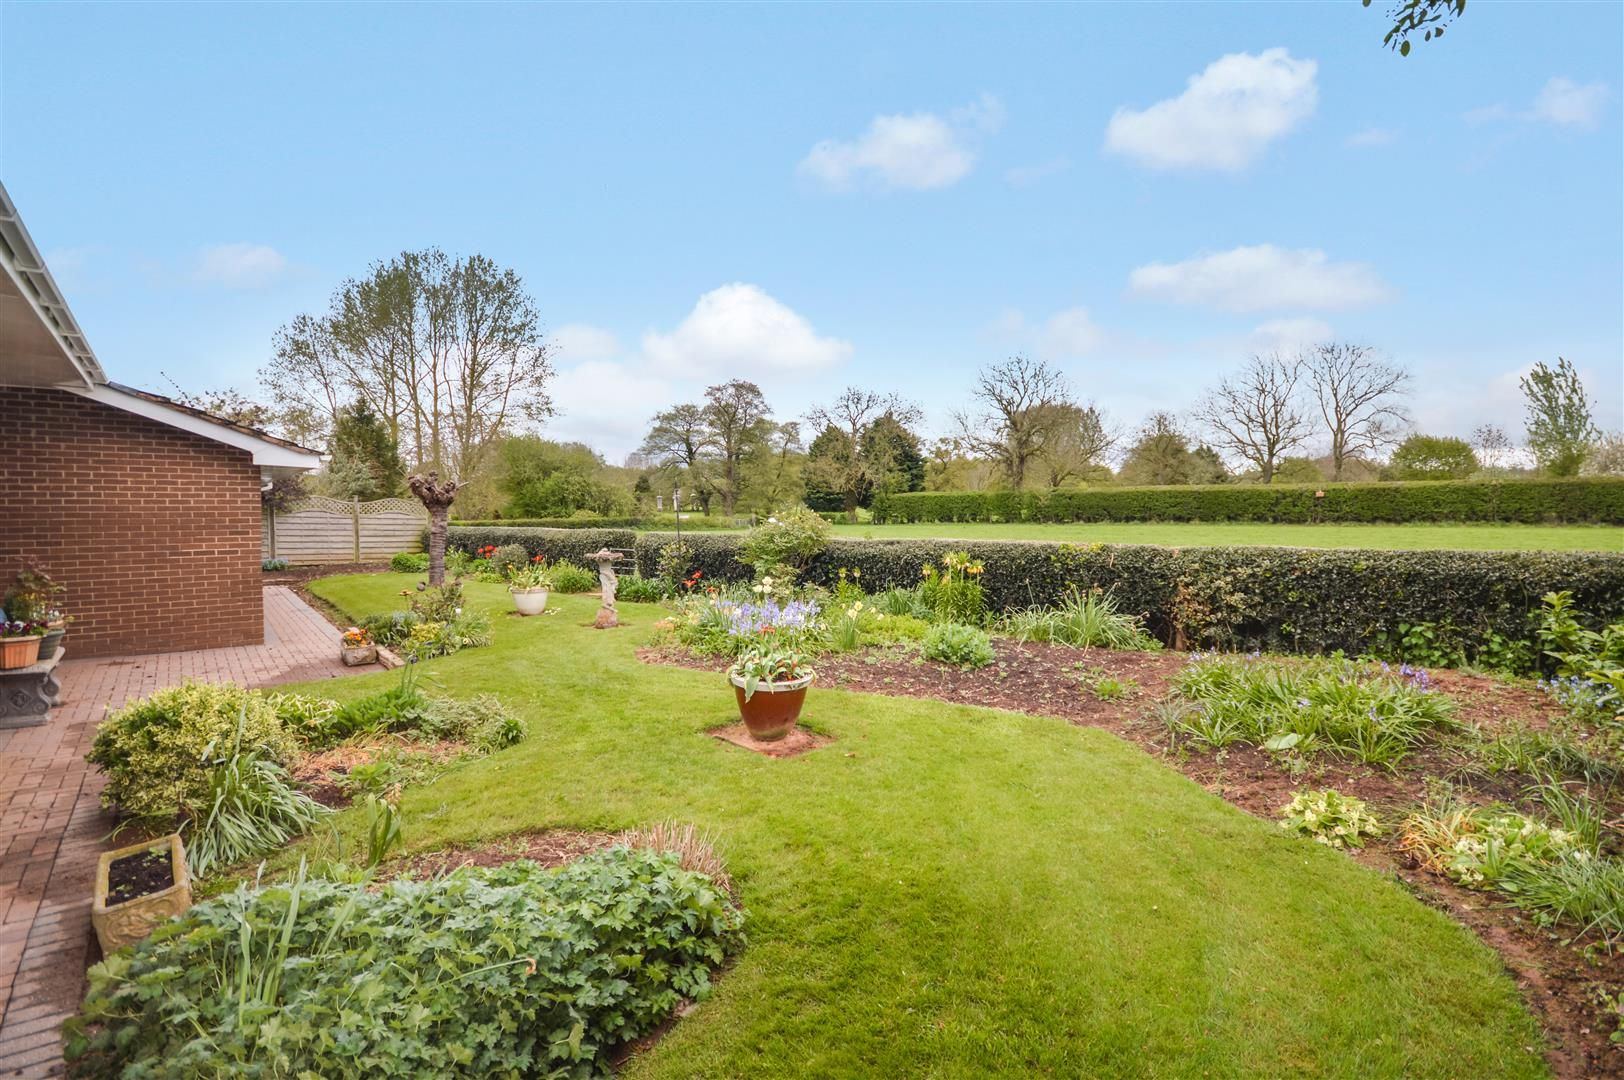 3 bed detached-bungalow for sale in Bodenham 5